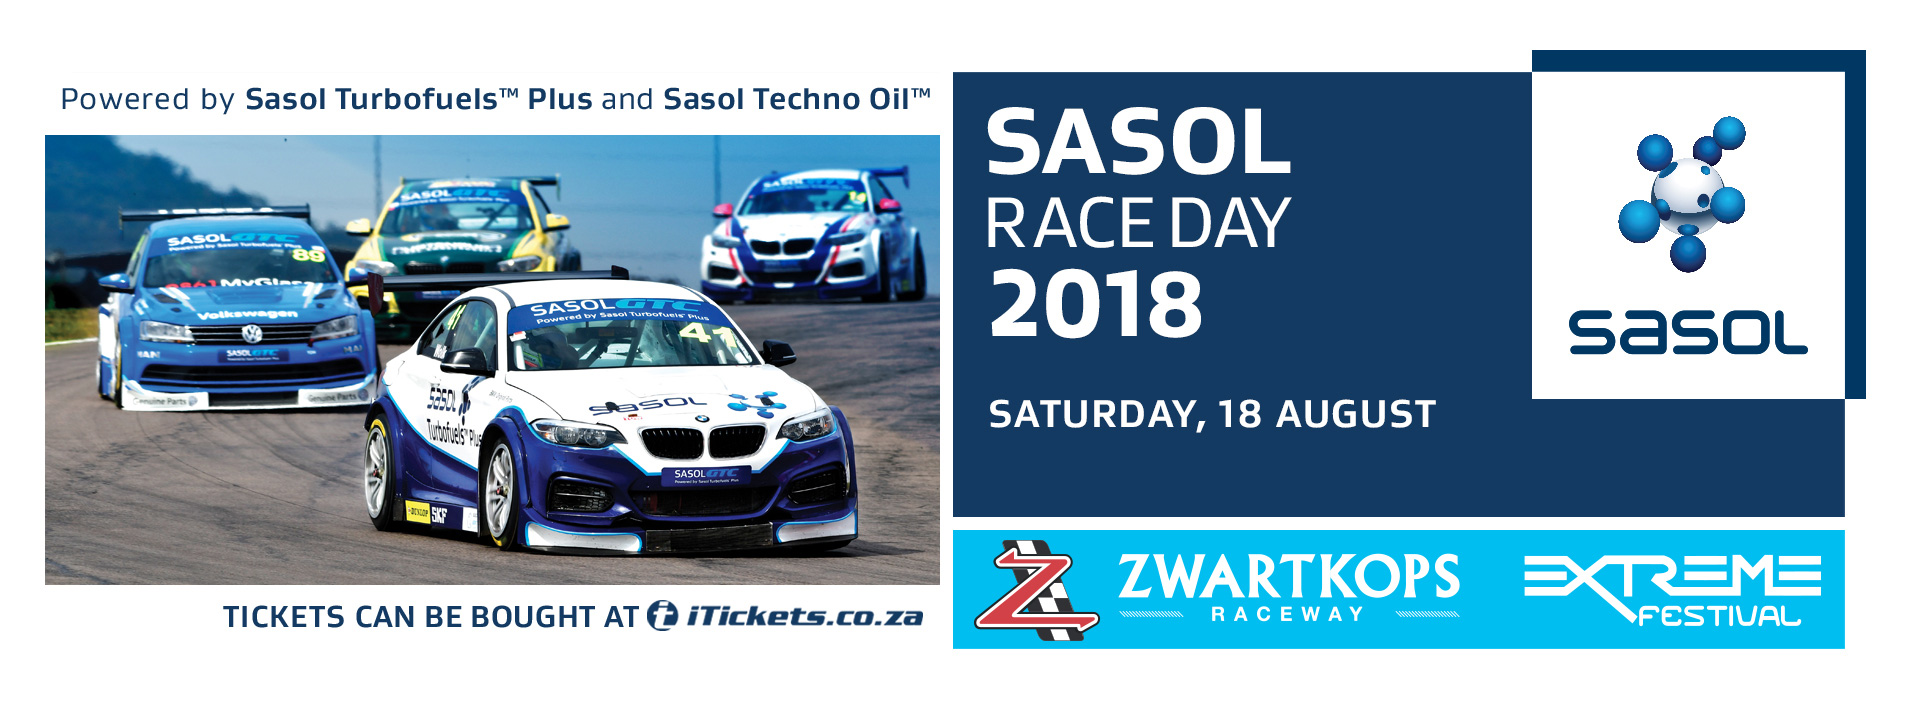 Entries now open for SASOL Race Day on 18 August 2018